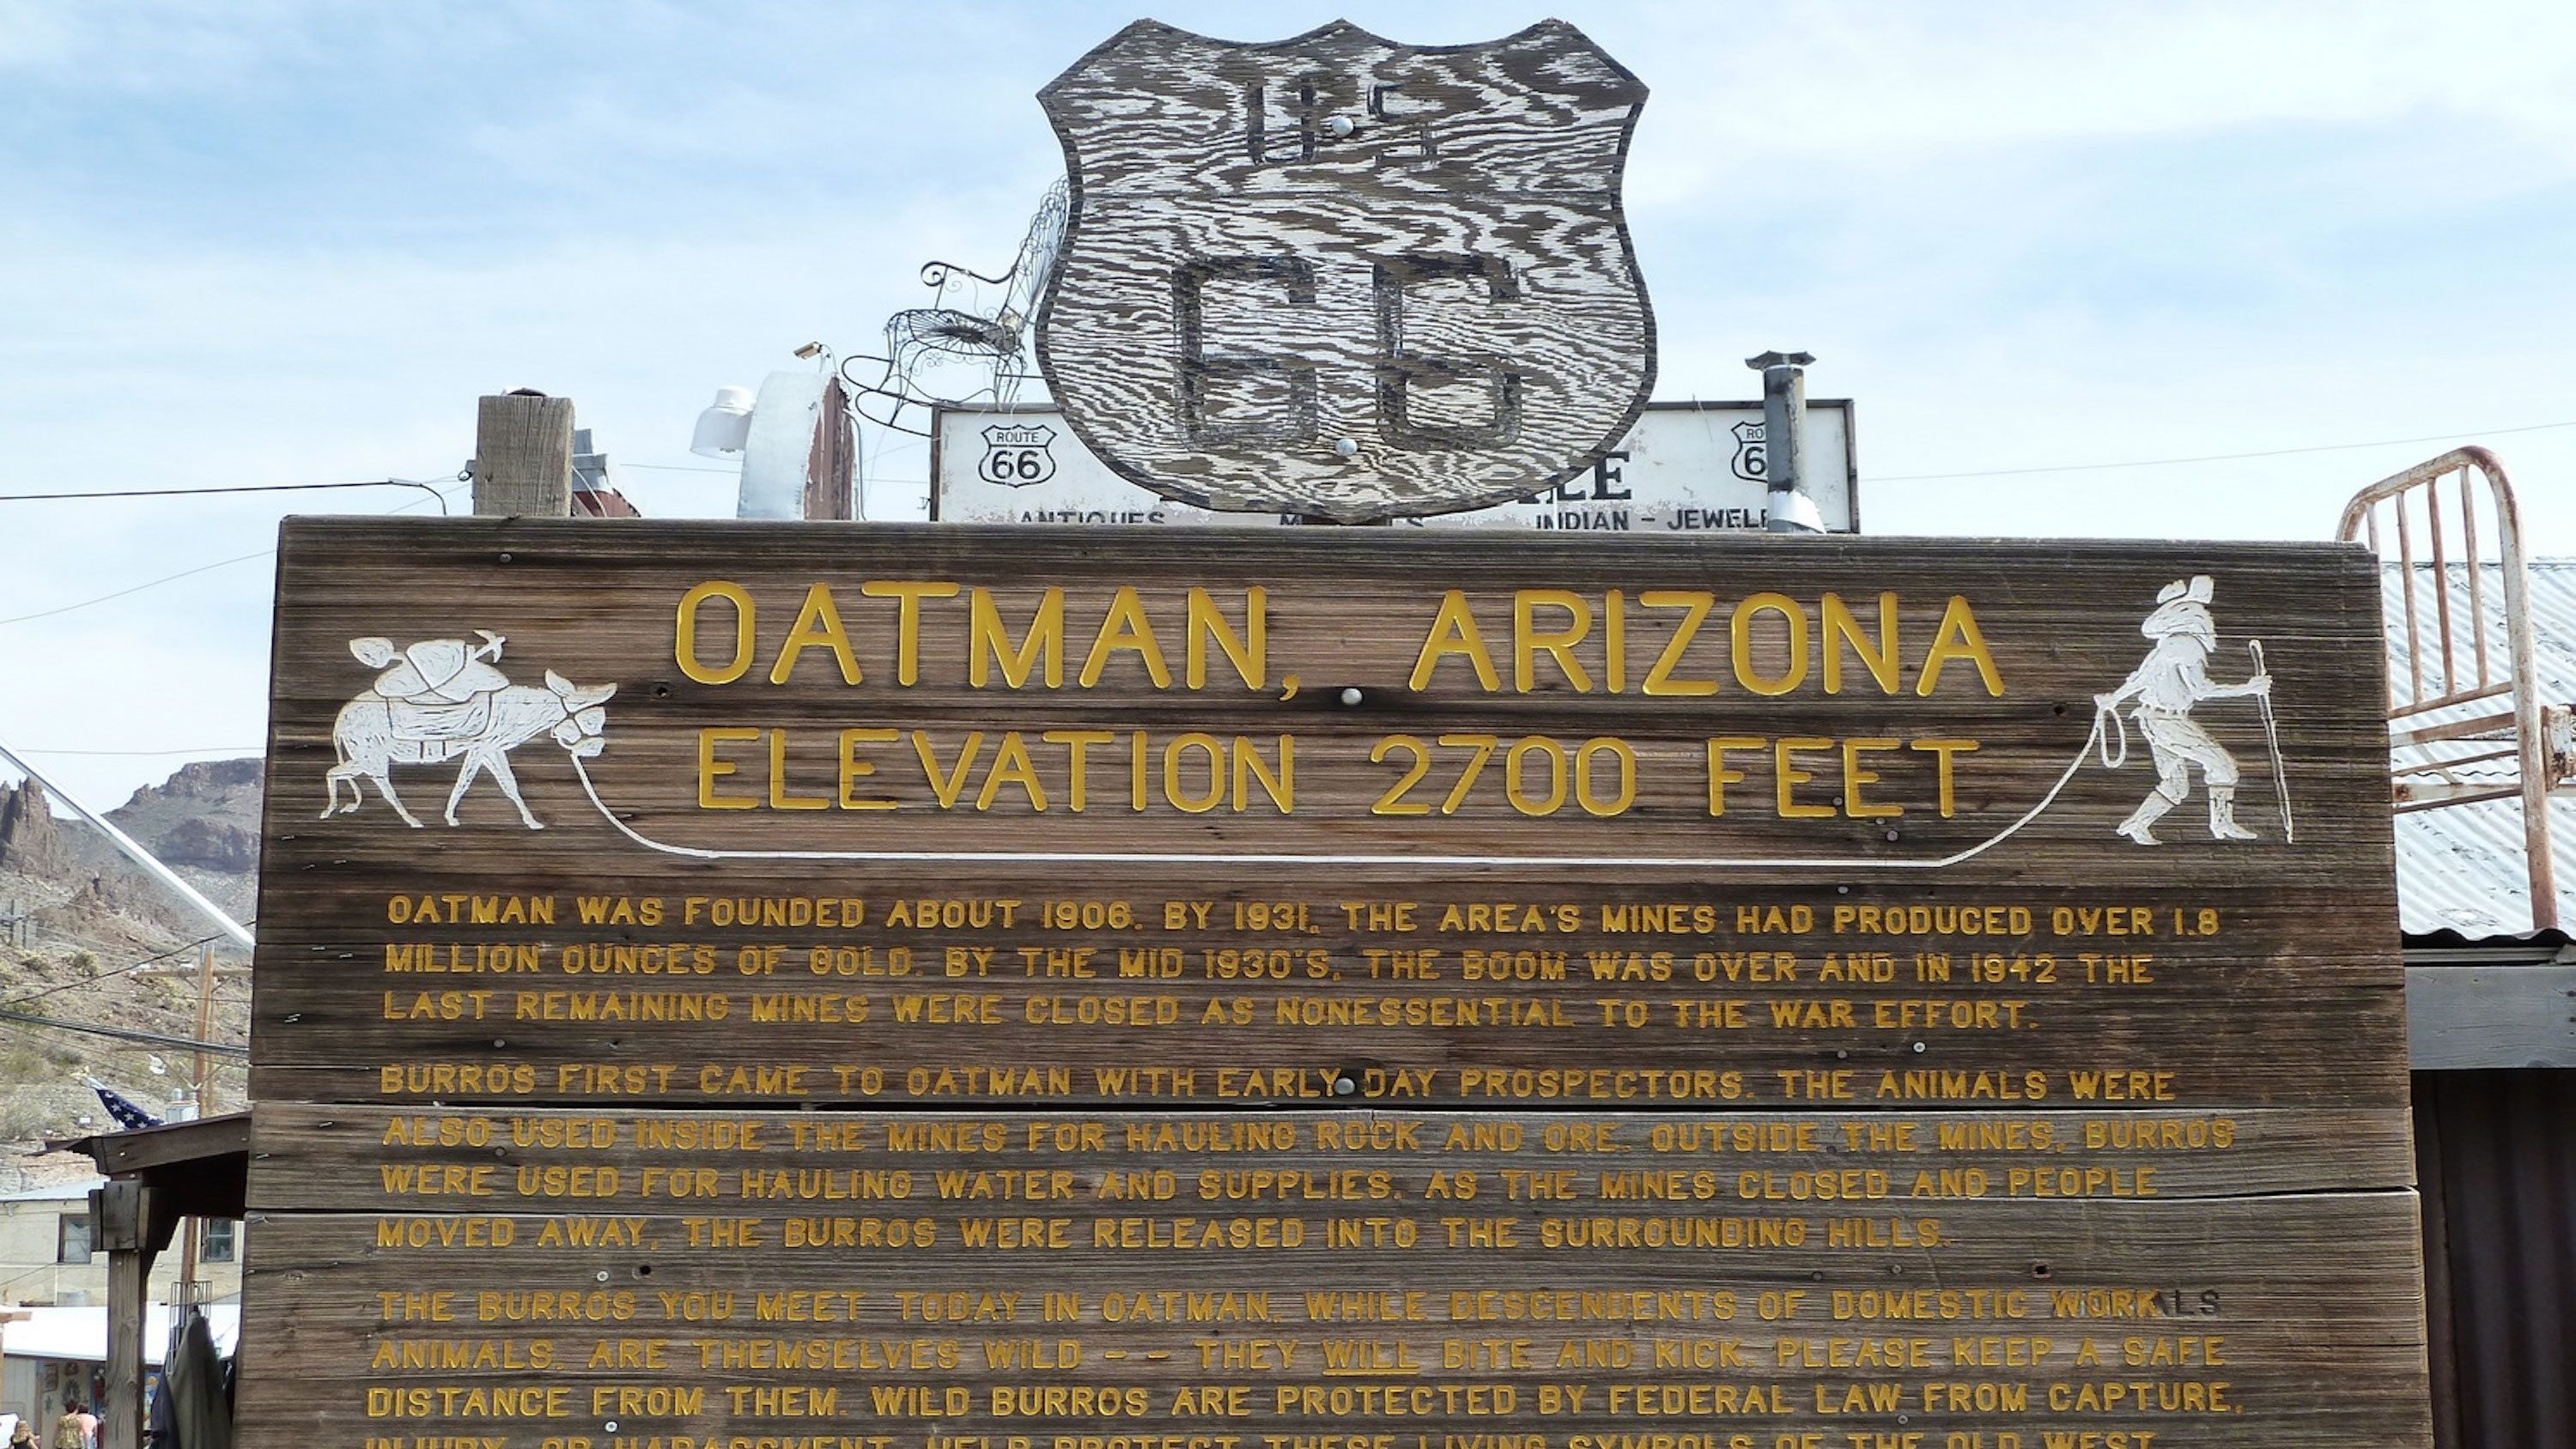 Sign along route 66 in Arizona